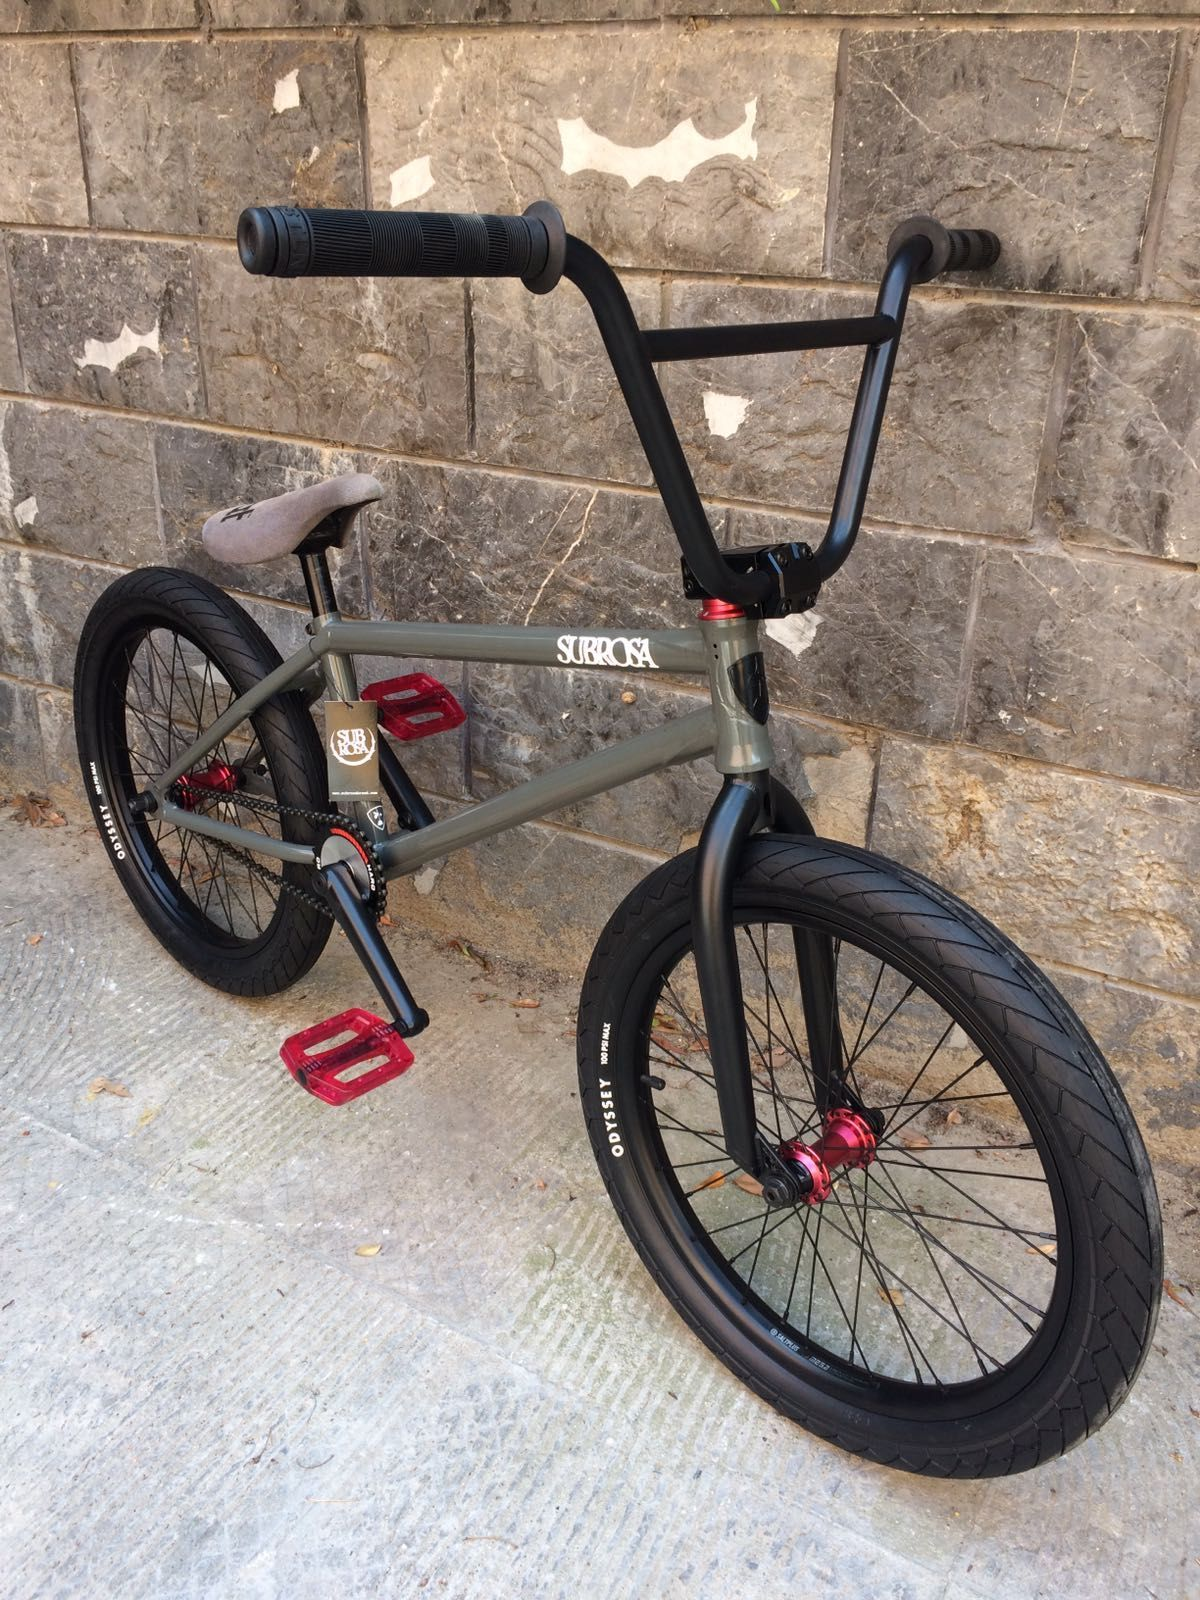 Hkkbmxdsgn Bmx Subrosa Do You Ride Bmx Bicicletas Bmx Bicis